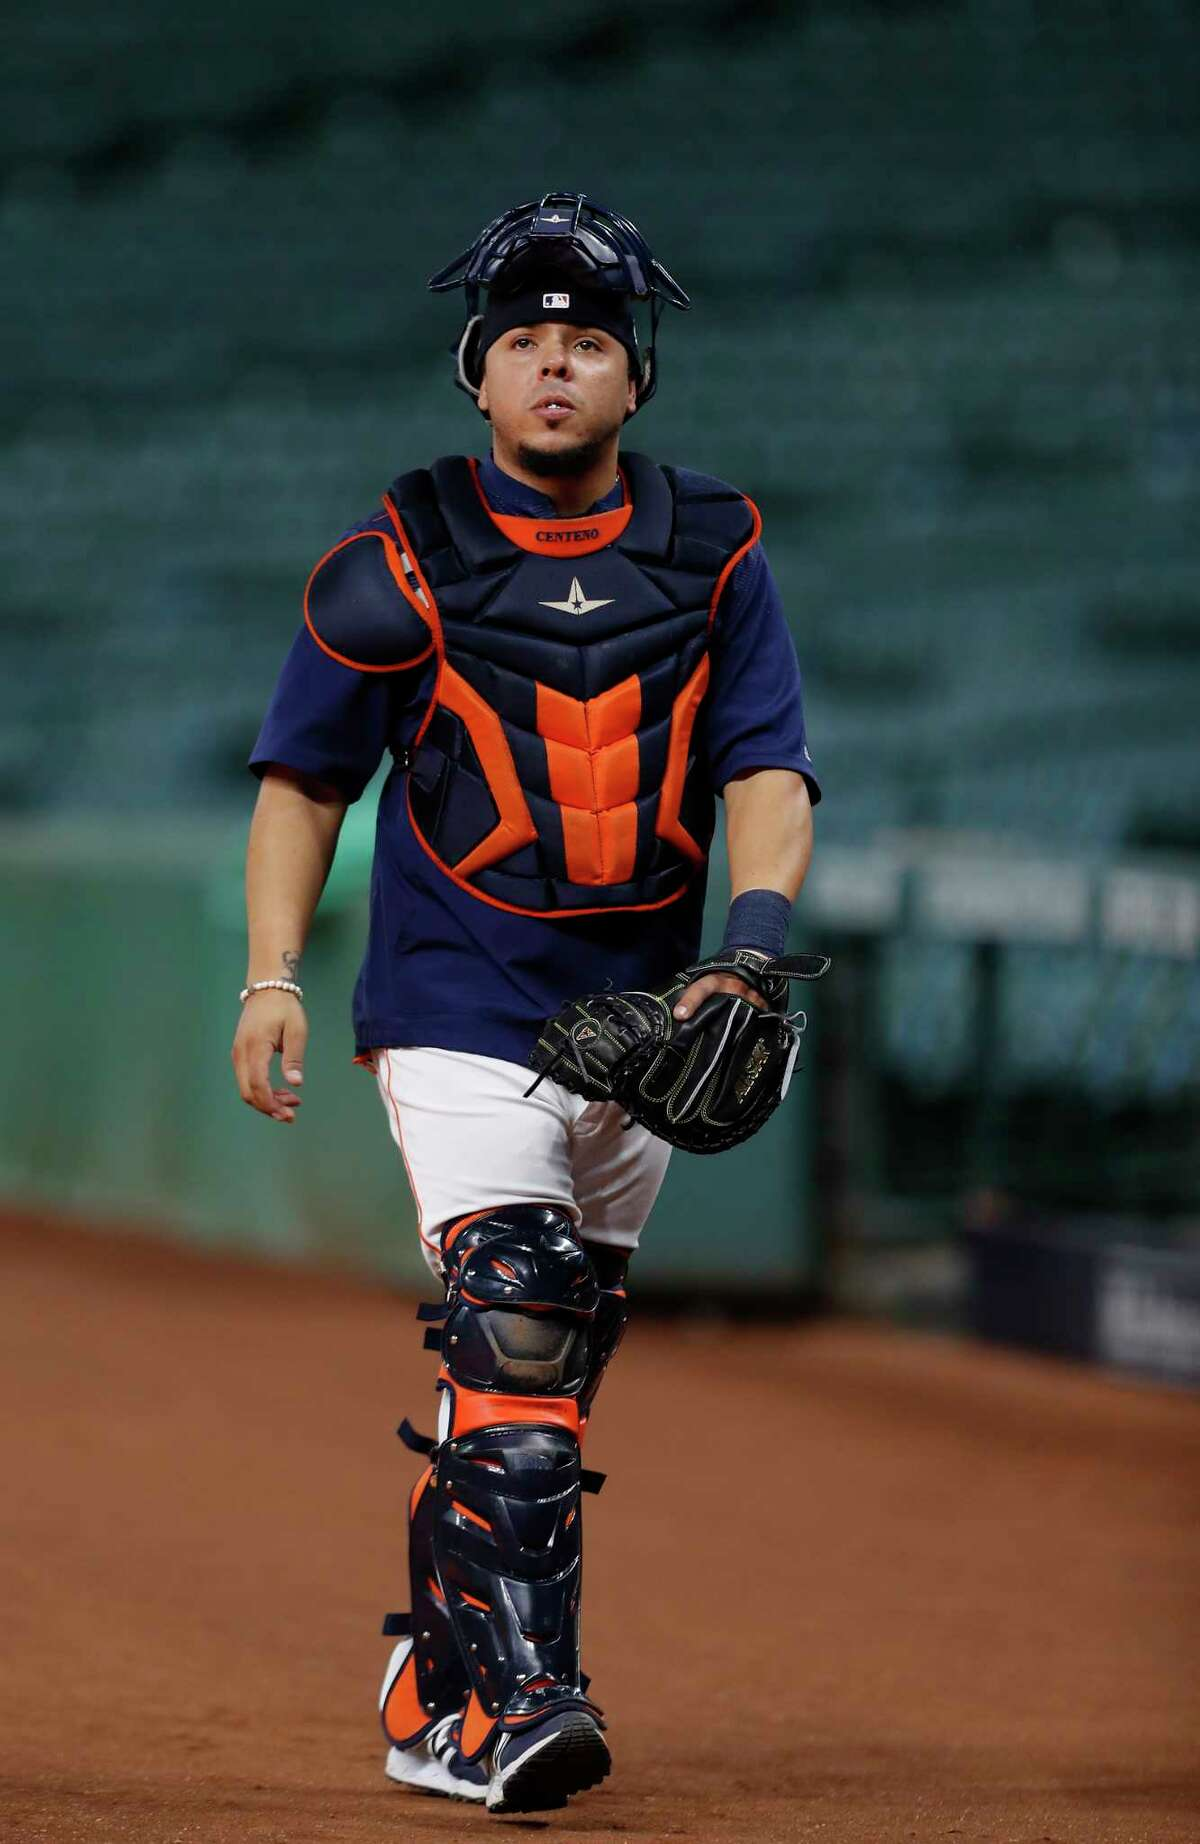 Houston Astros catcher Juan Centeno during the Houston Astros batting practice at Minute Maid Park, Tuesday, Oct. 3, 2017, in Houston, as they prepare to take on the Boston Red Sox in the ALDS playoffs.